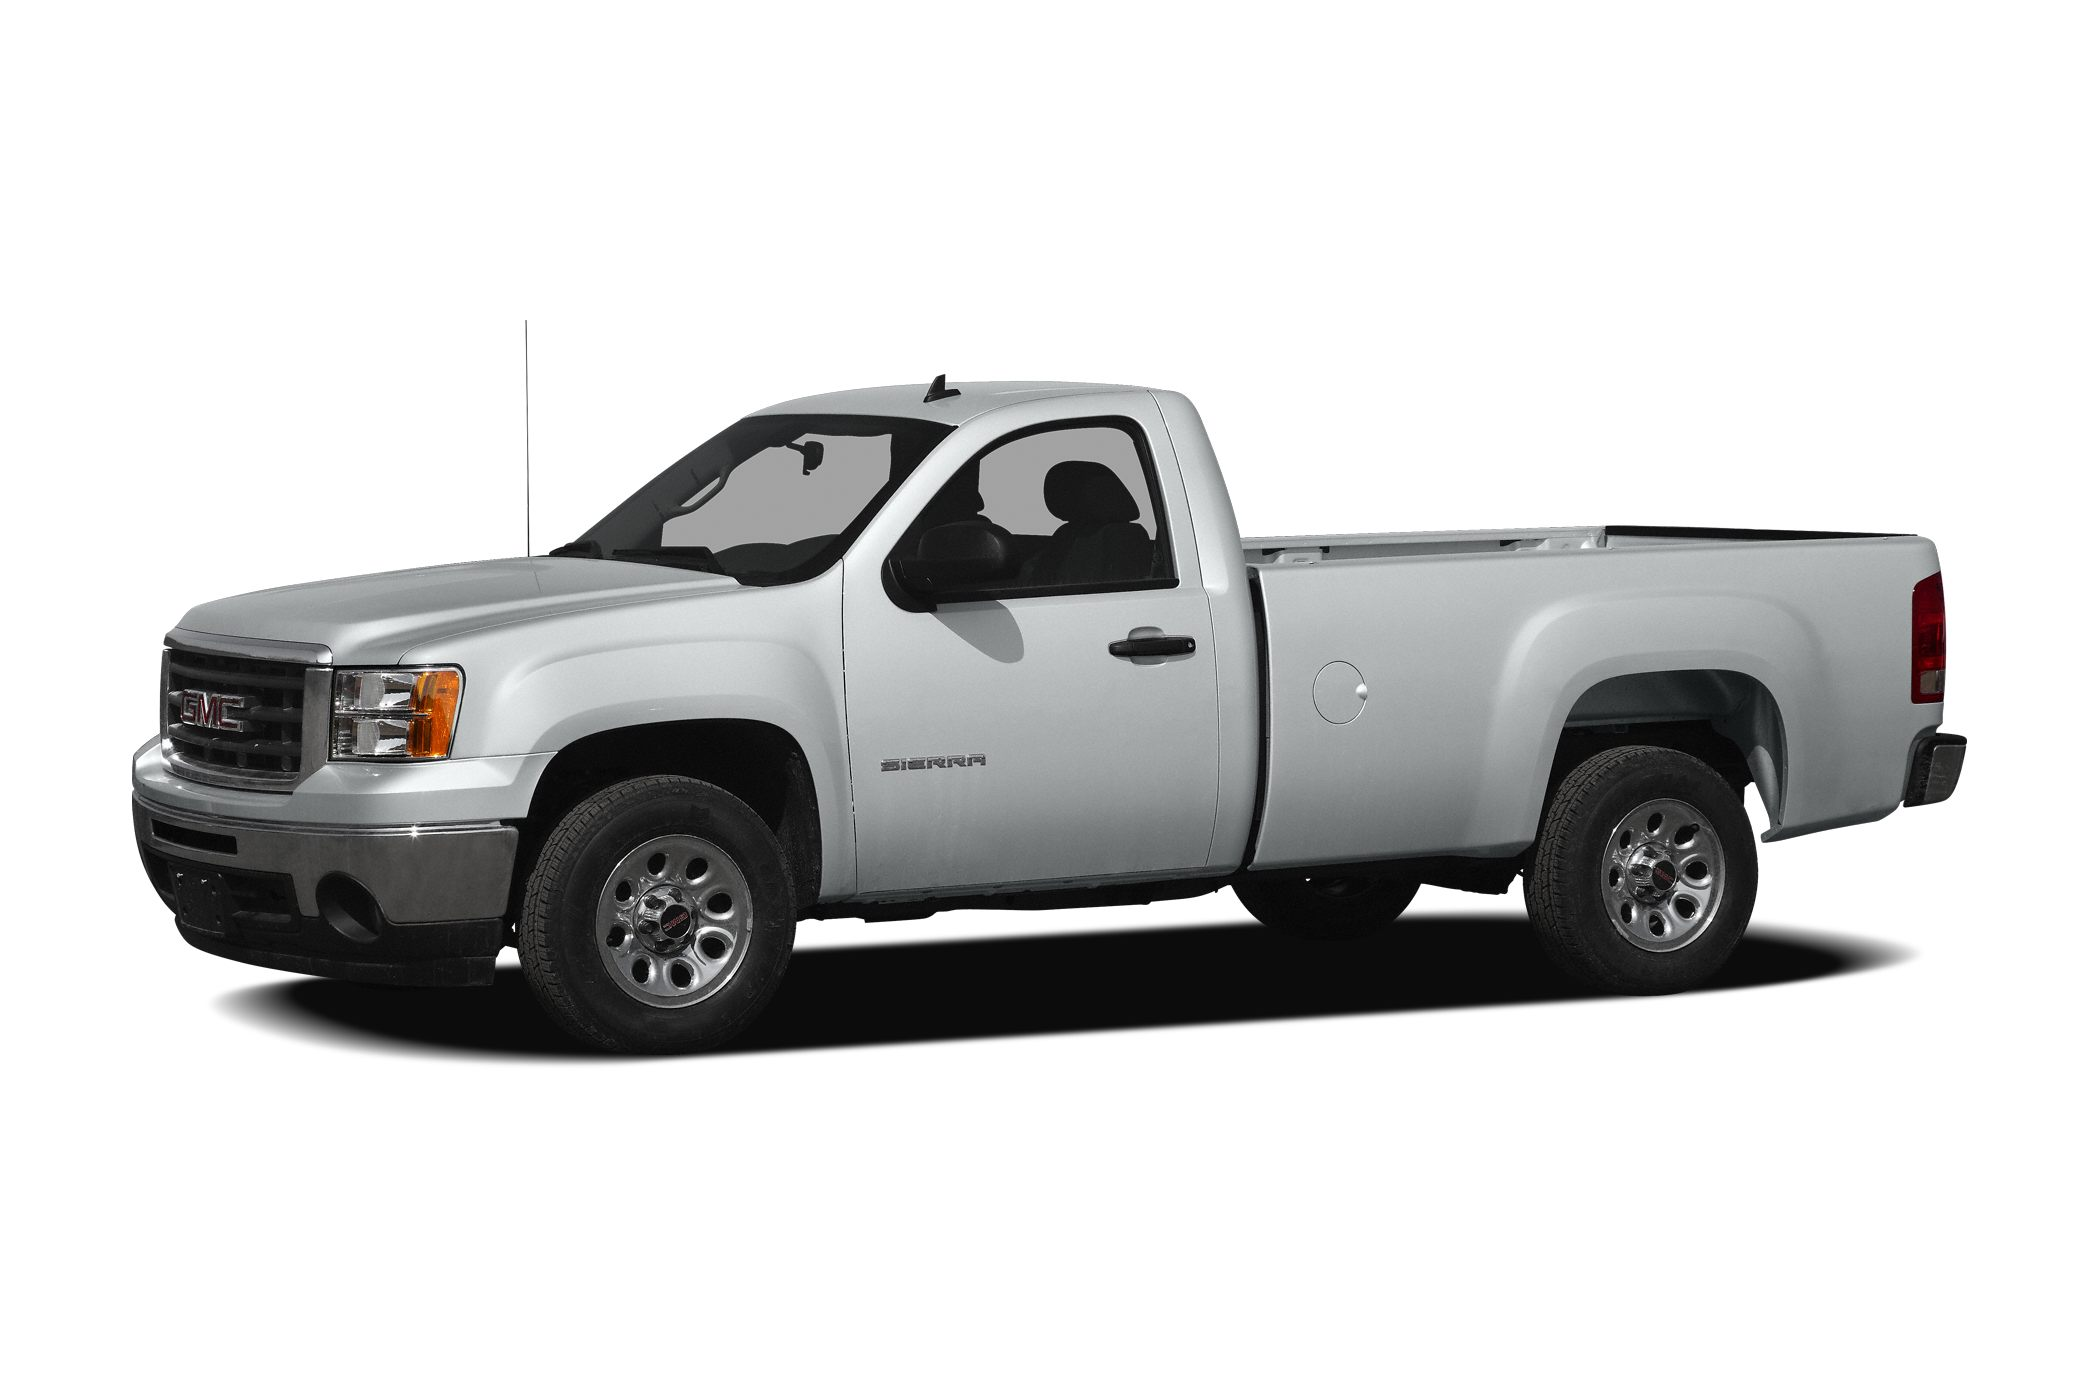 2010 GMC Sierra 1500 SLE Extended Cab Pickup for sale in Easton for $24,833 with 68,902 miles.